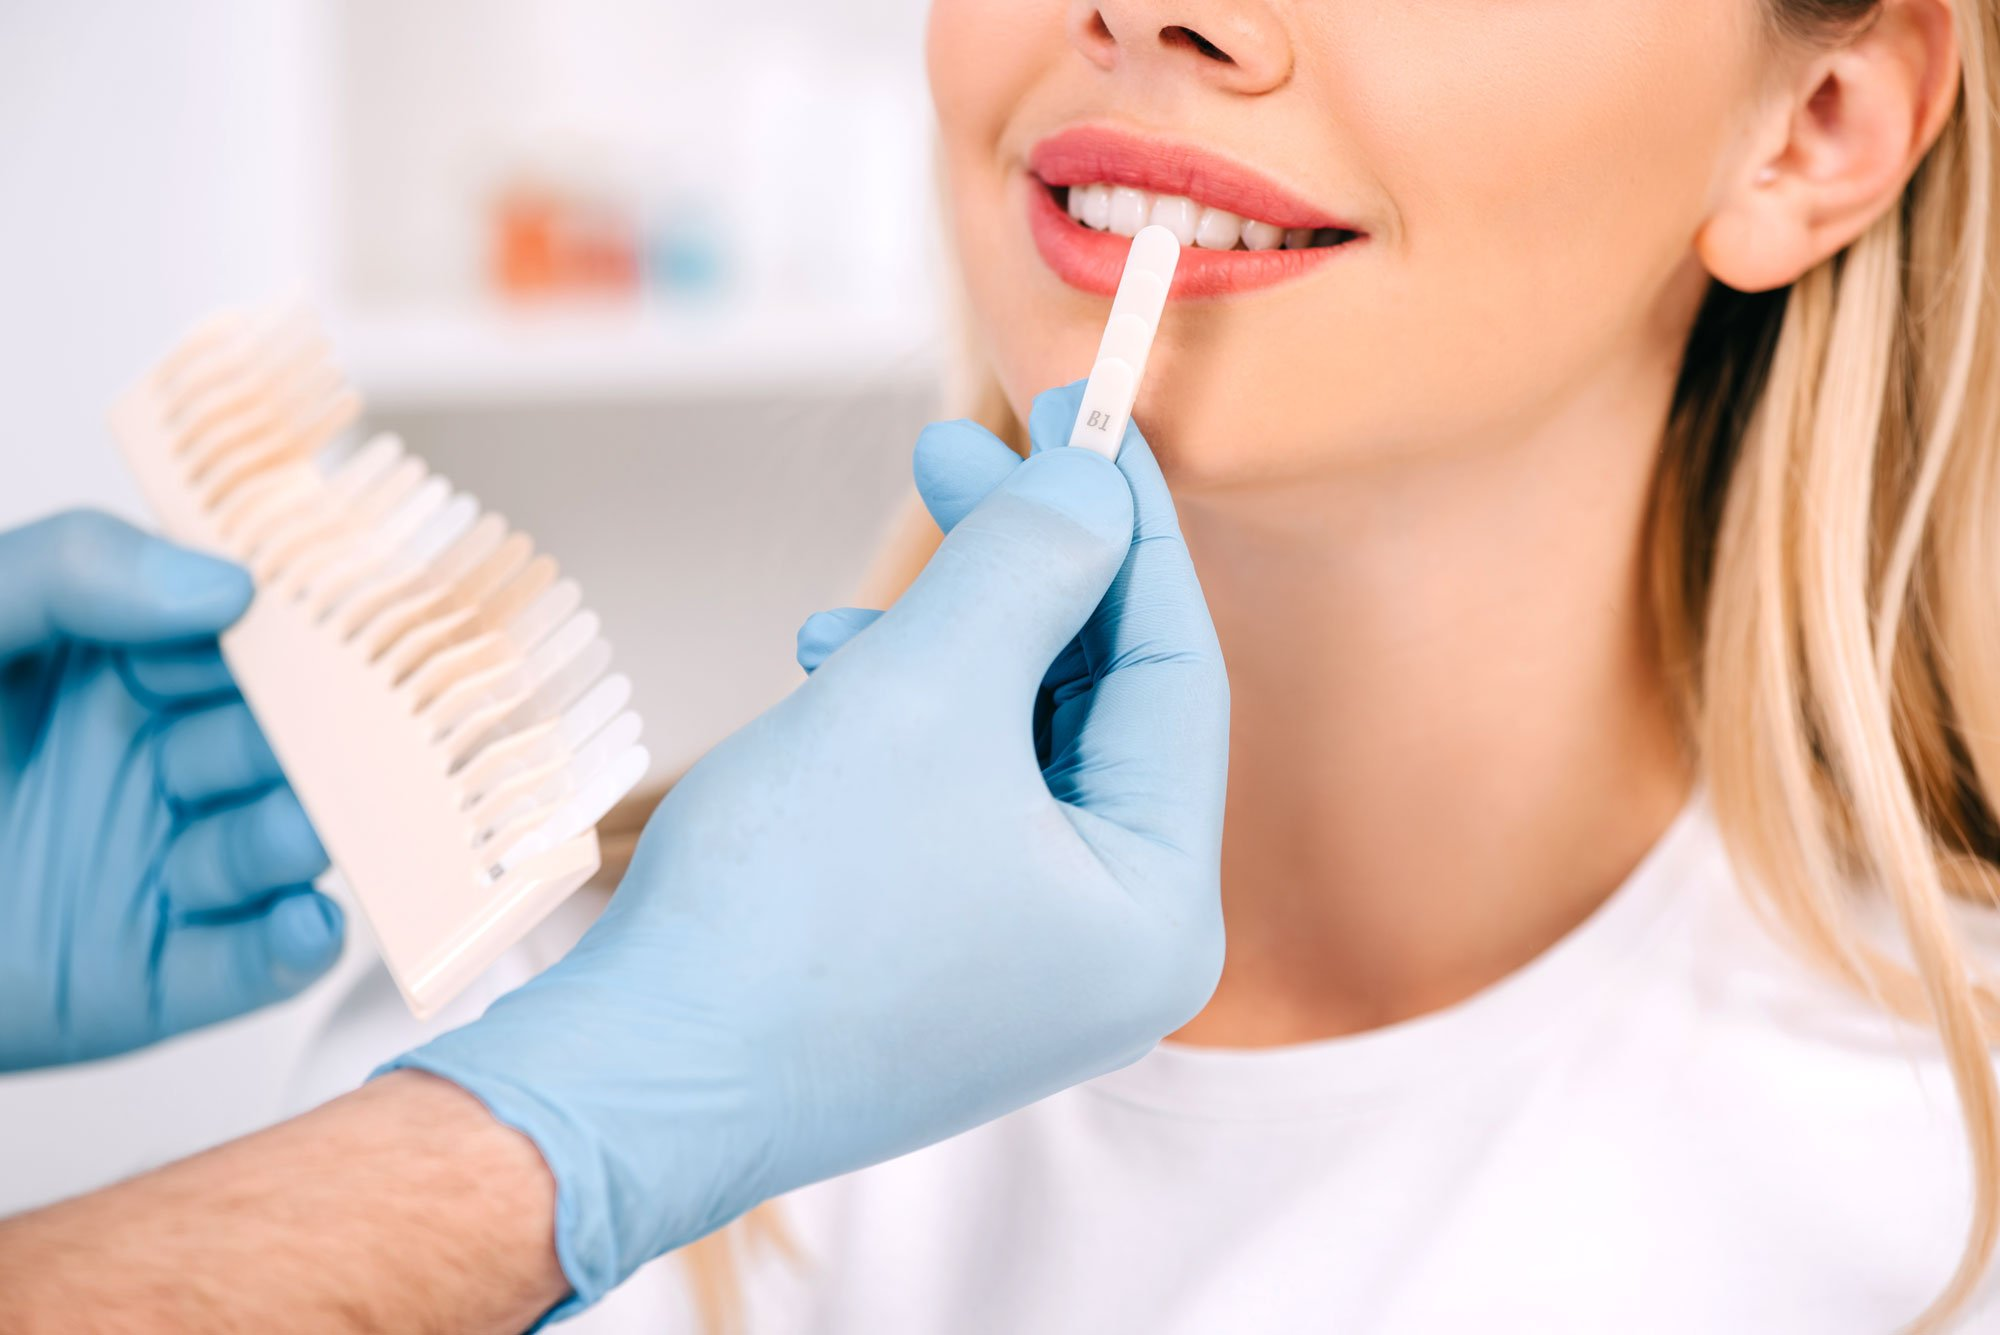 Teeth Whitening - Dental Surgery Services - We Create Smiles